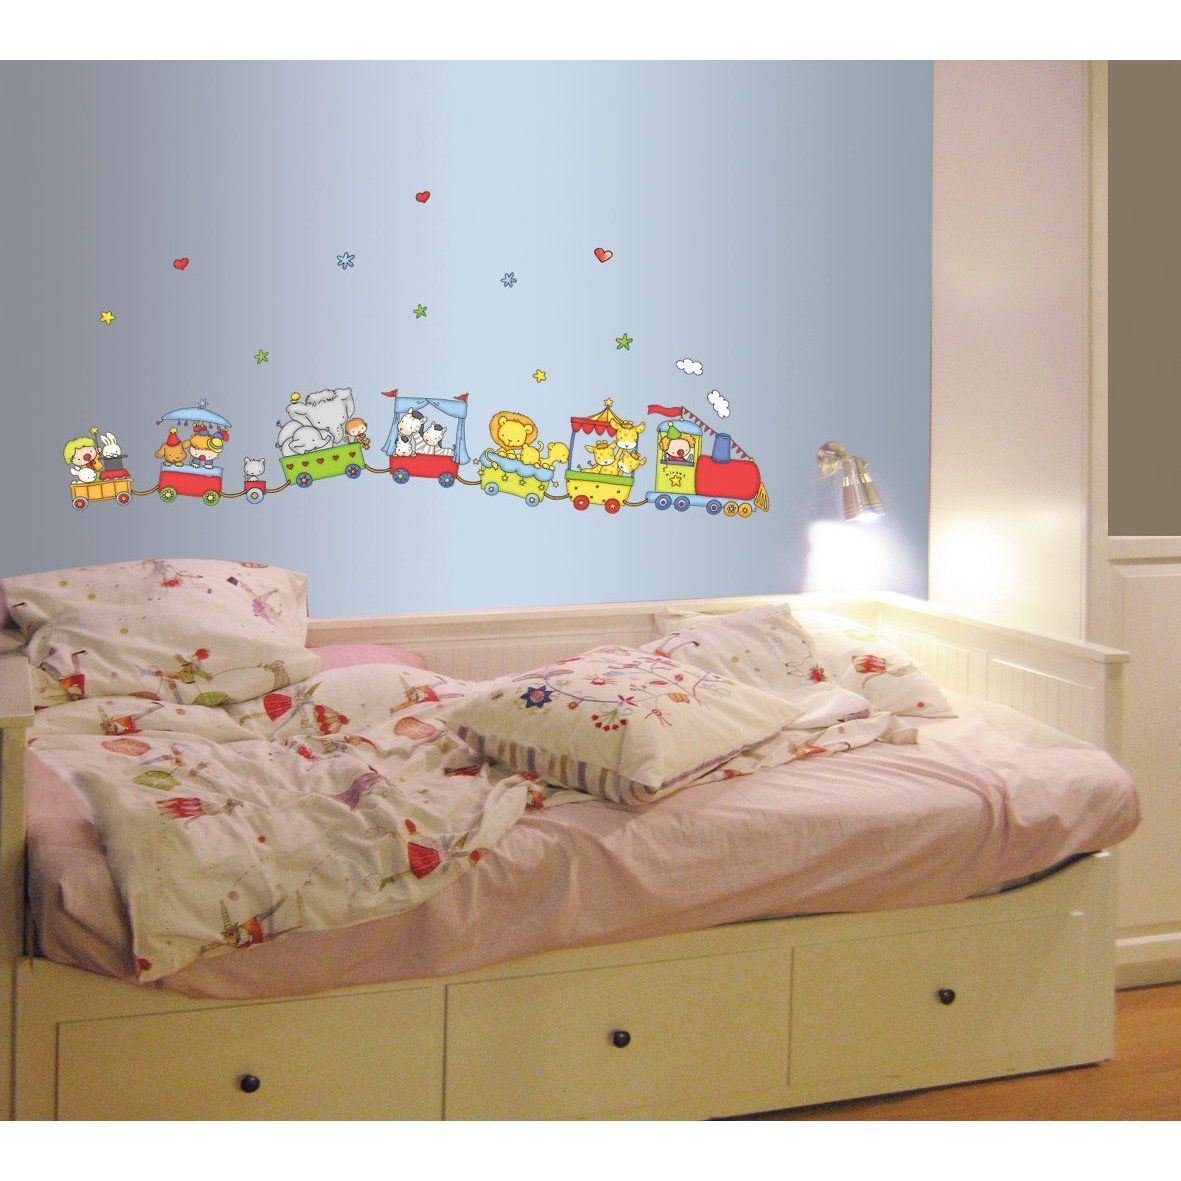 Baby boy room decor stickers - Retro Wall Stickers Children Google